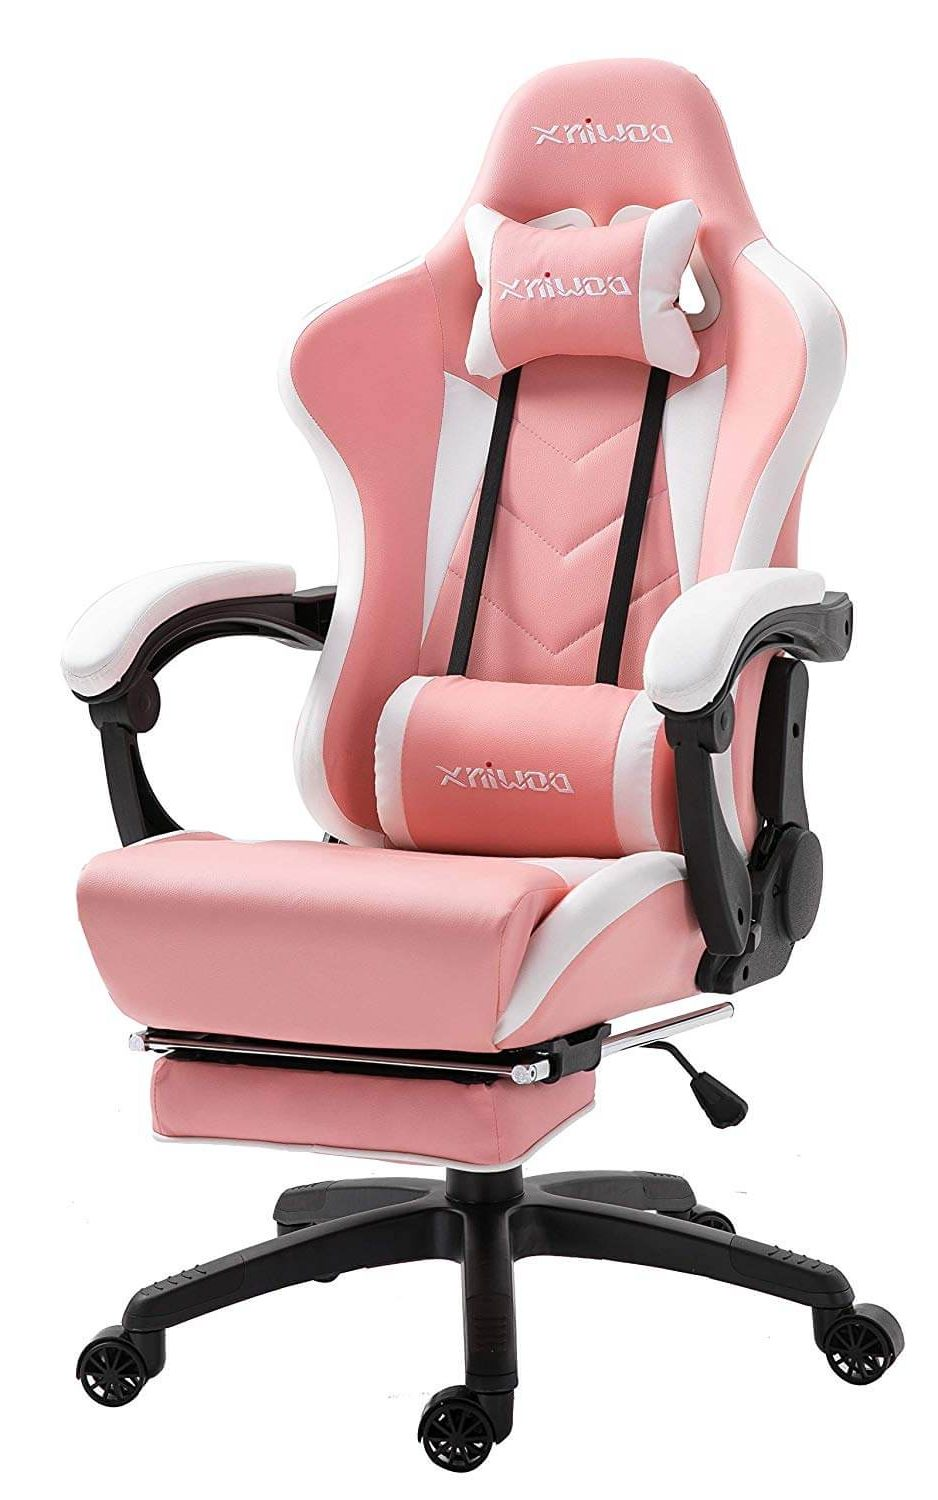 Chaise gaming rose massante